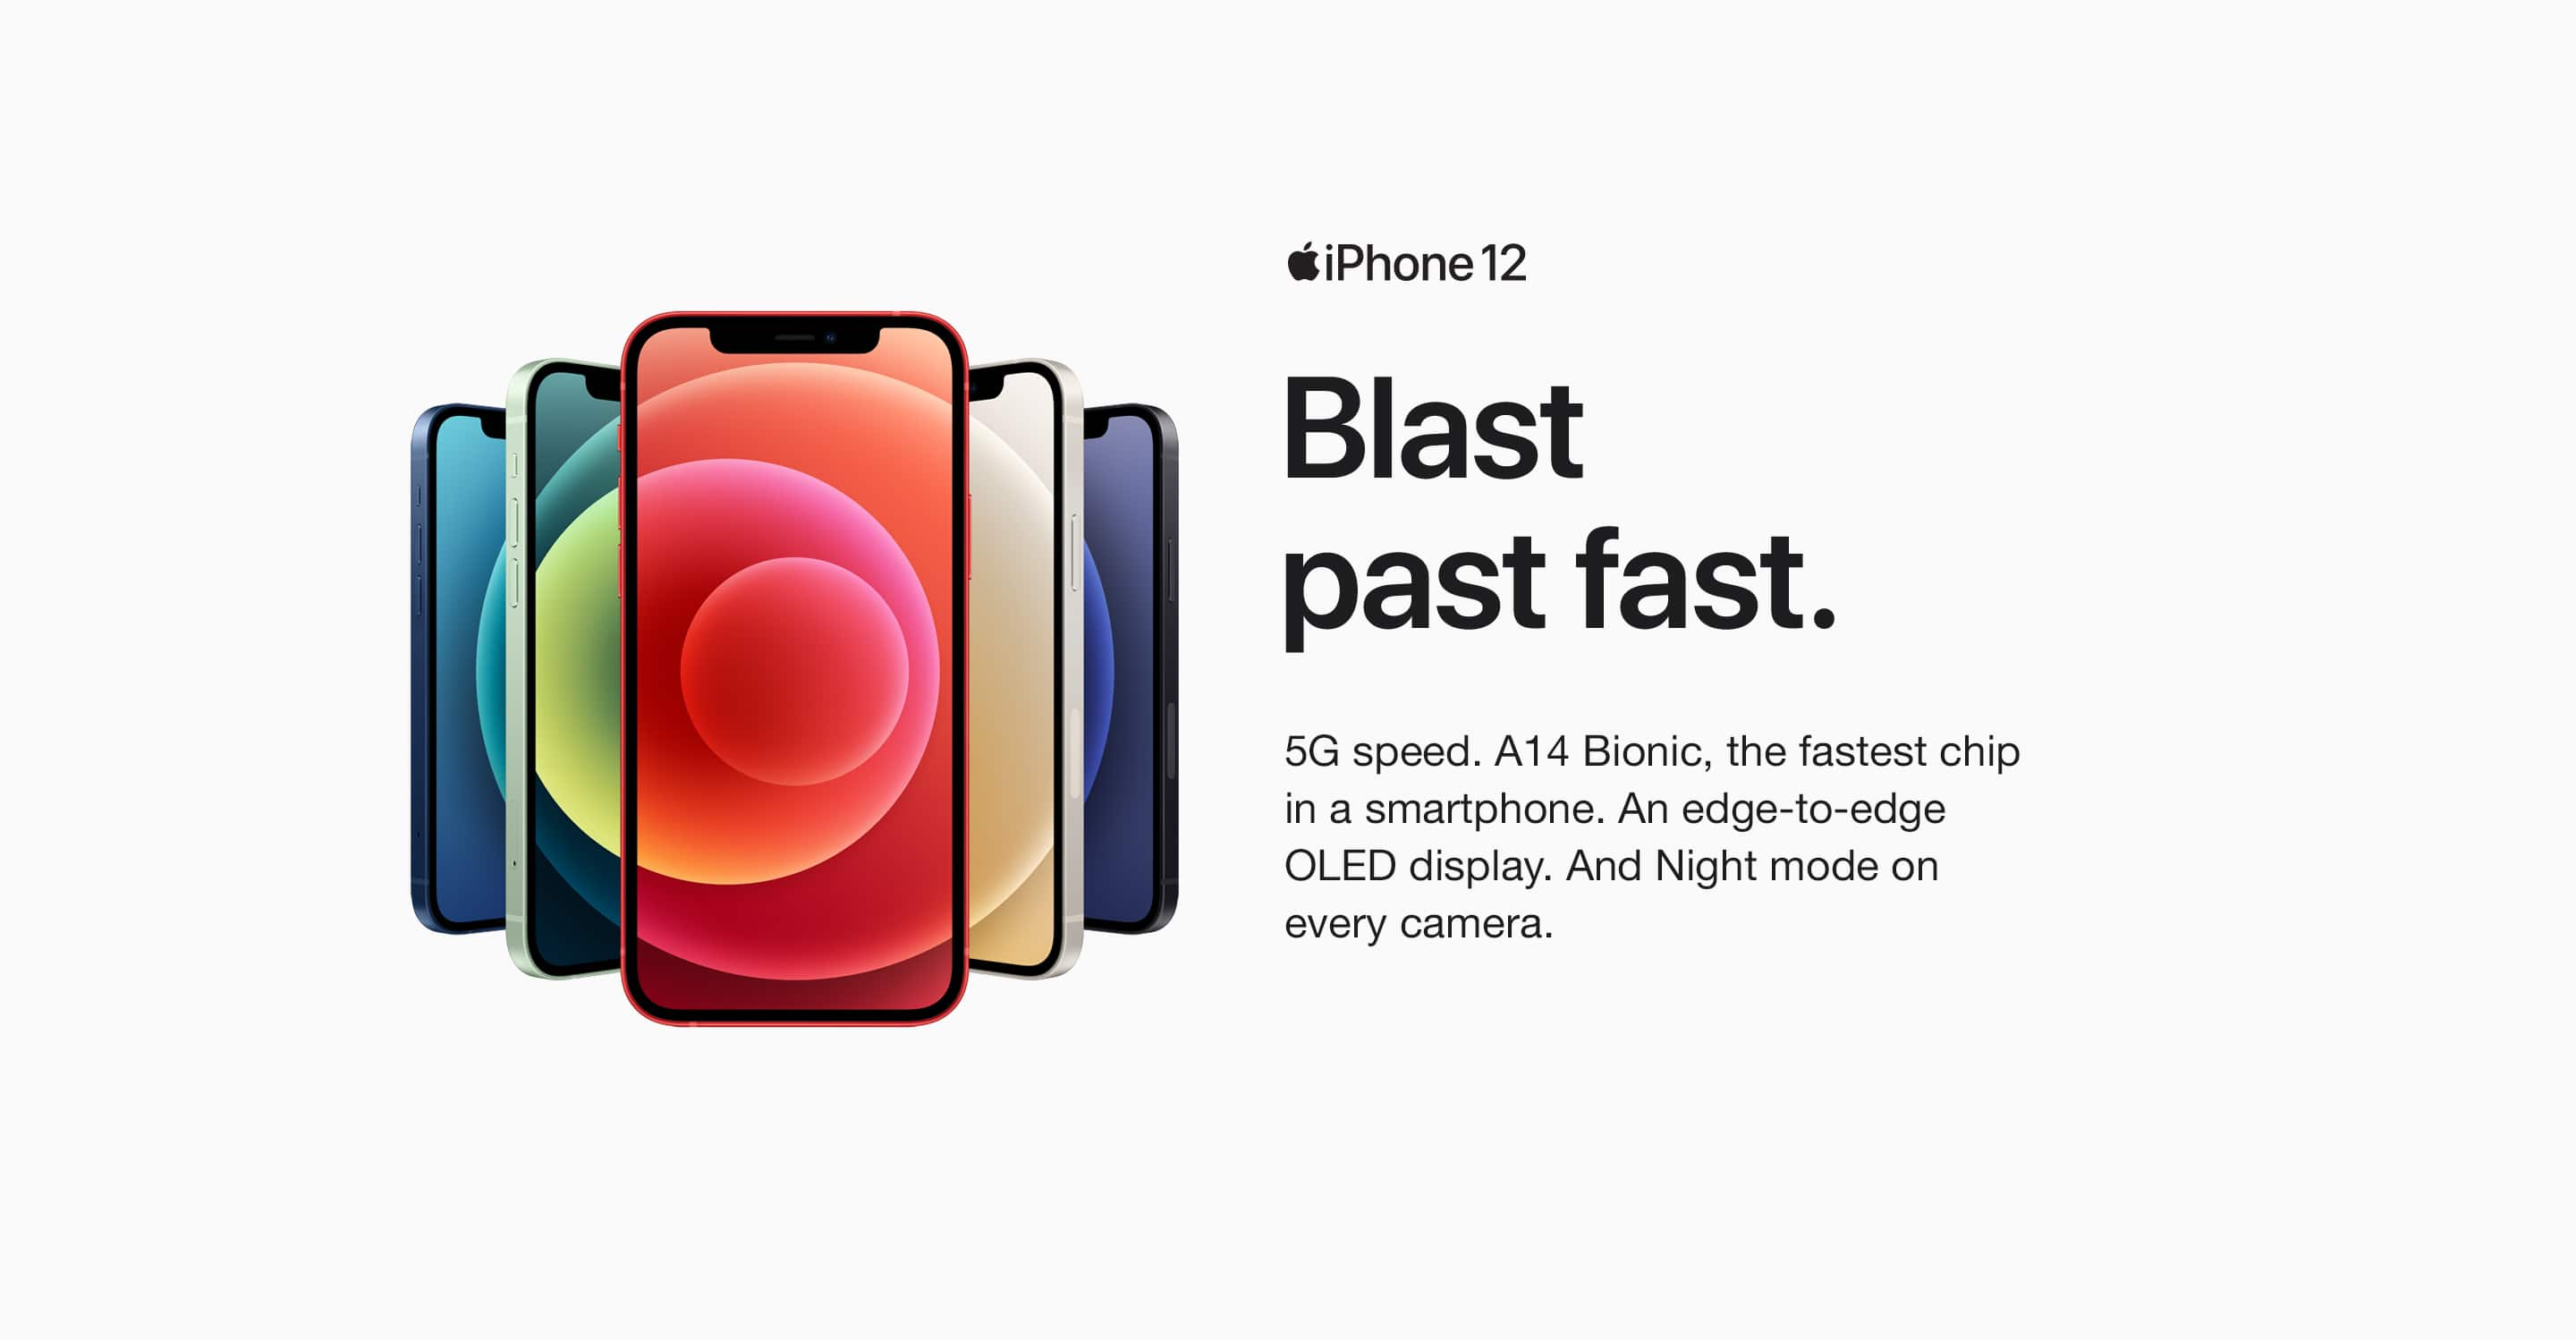 iPhone 12. Blast past fast. 5G speed. A14 Bionic, the fastest chip in a smartphone. An edge-to-edge OLED display. And Night mode on every camera.